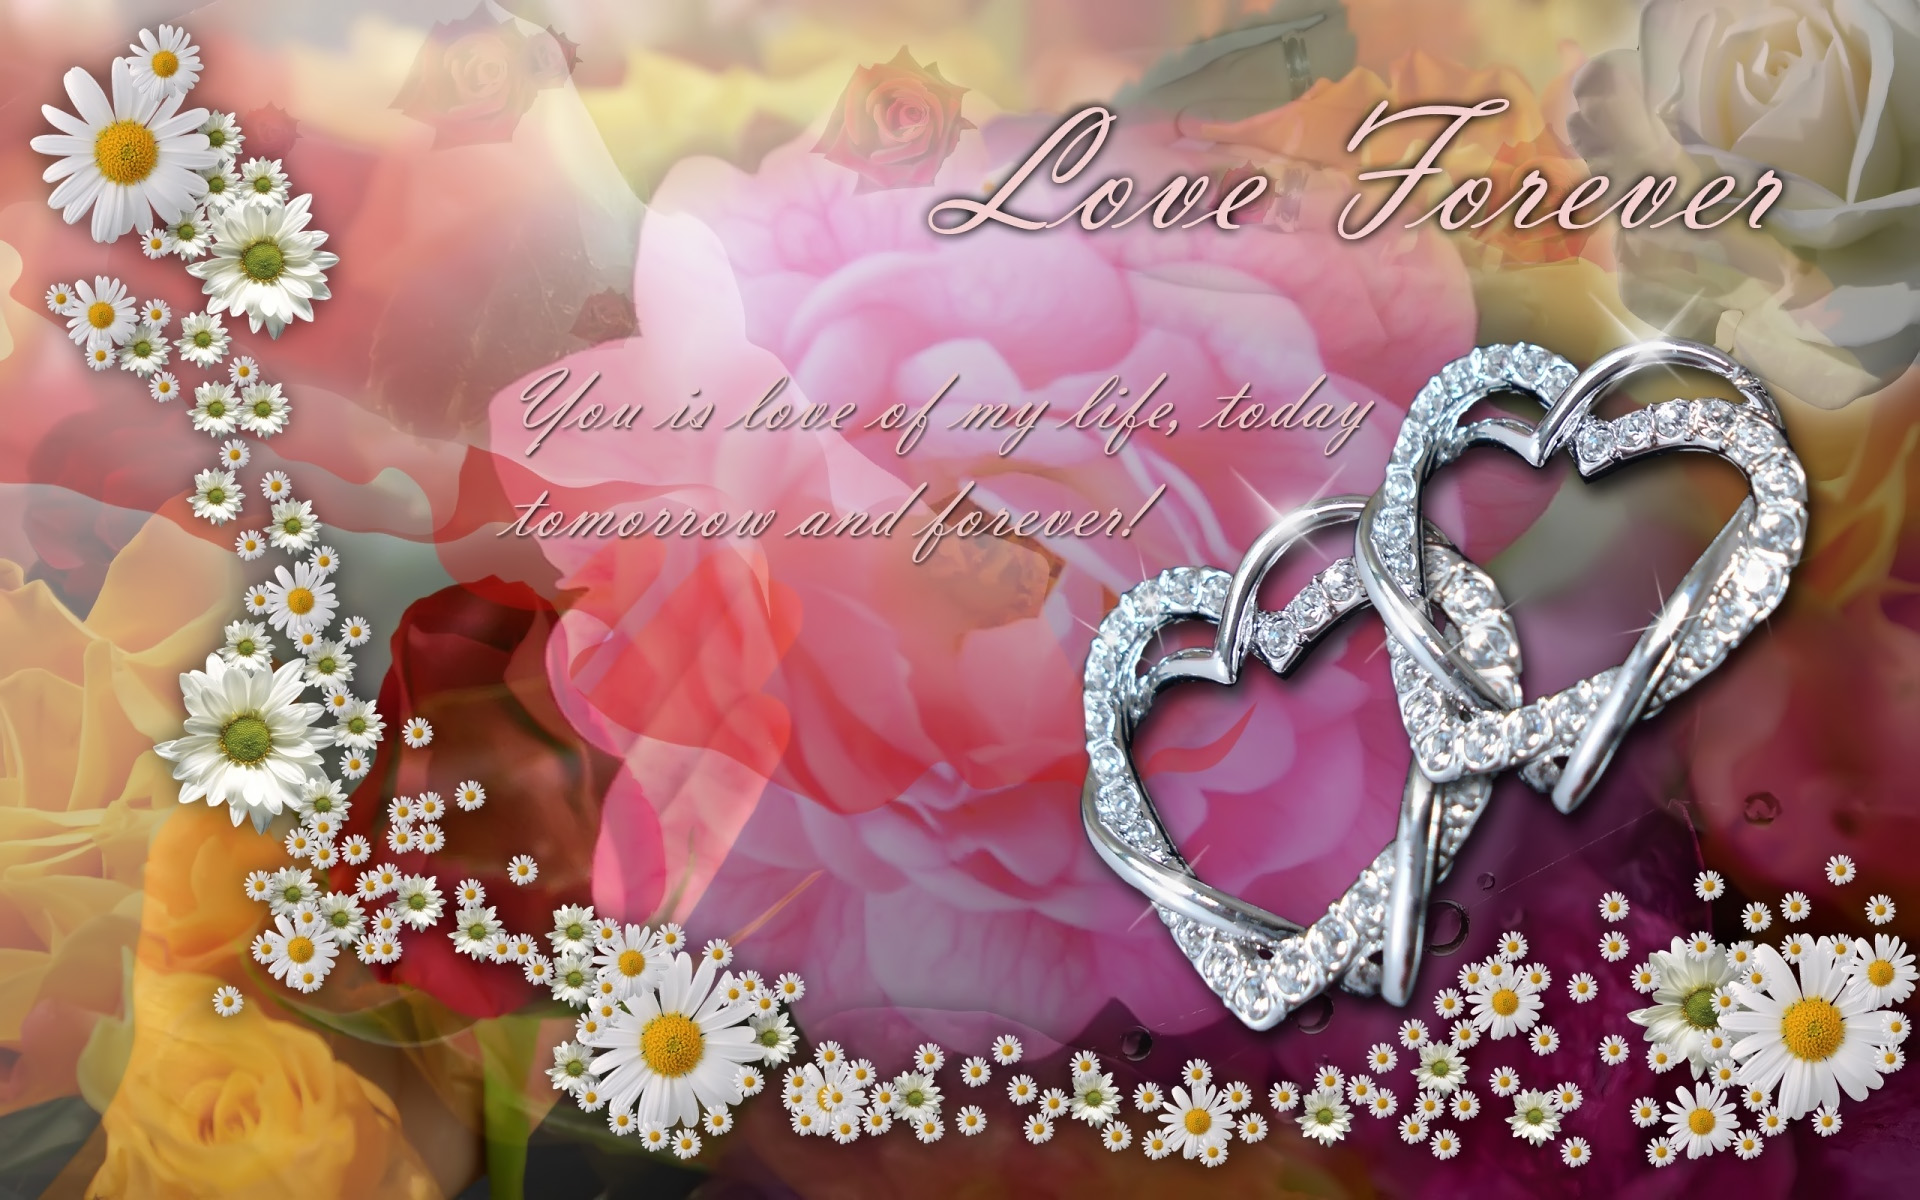 forever love valentines backgrounds wallpapers 1920x1200 1920x1200